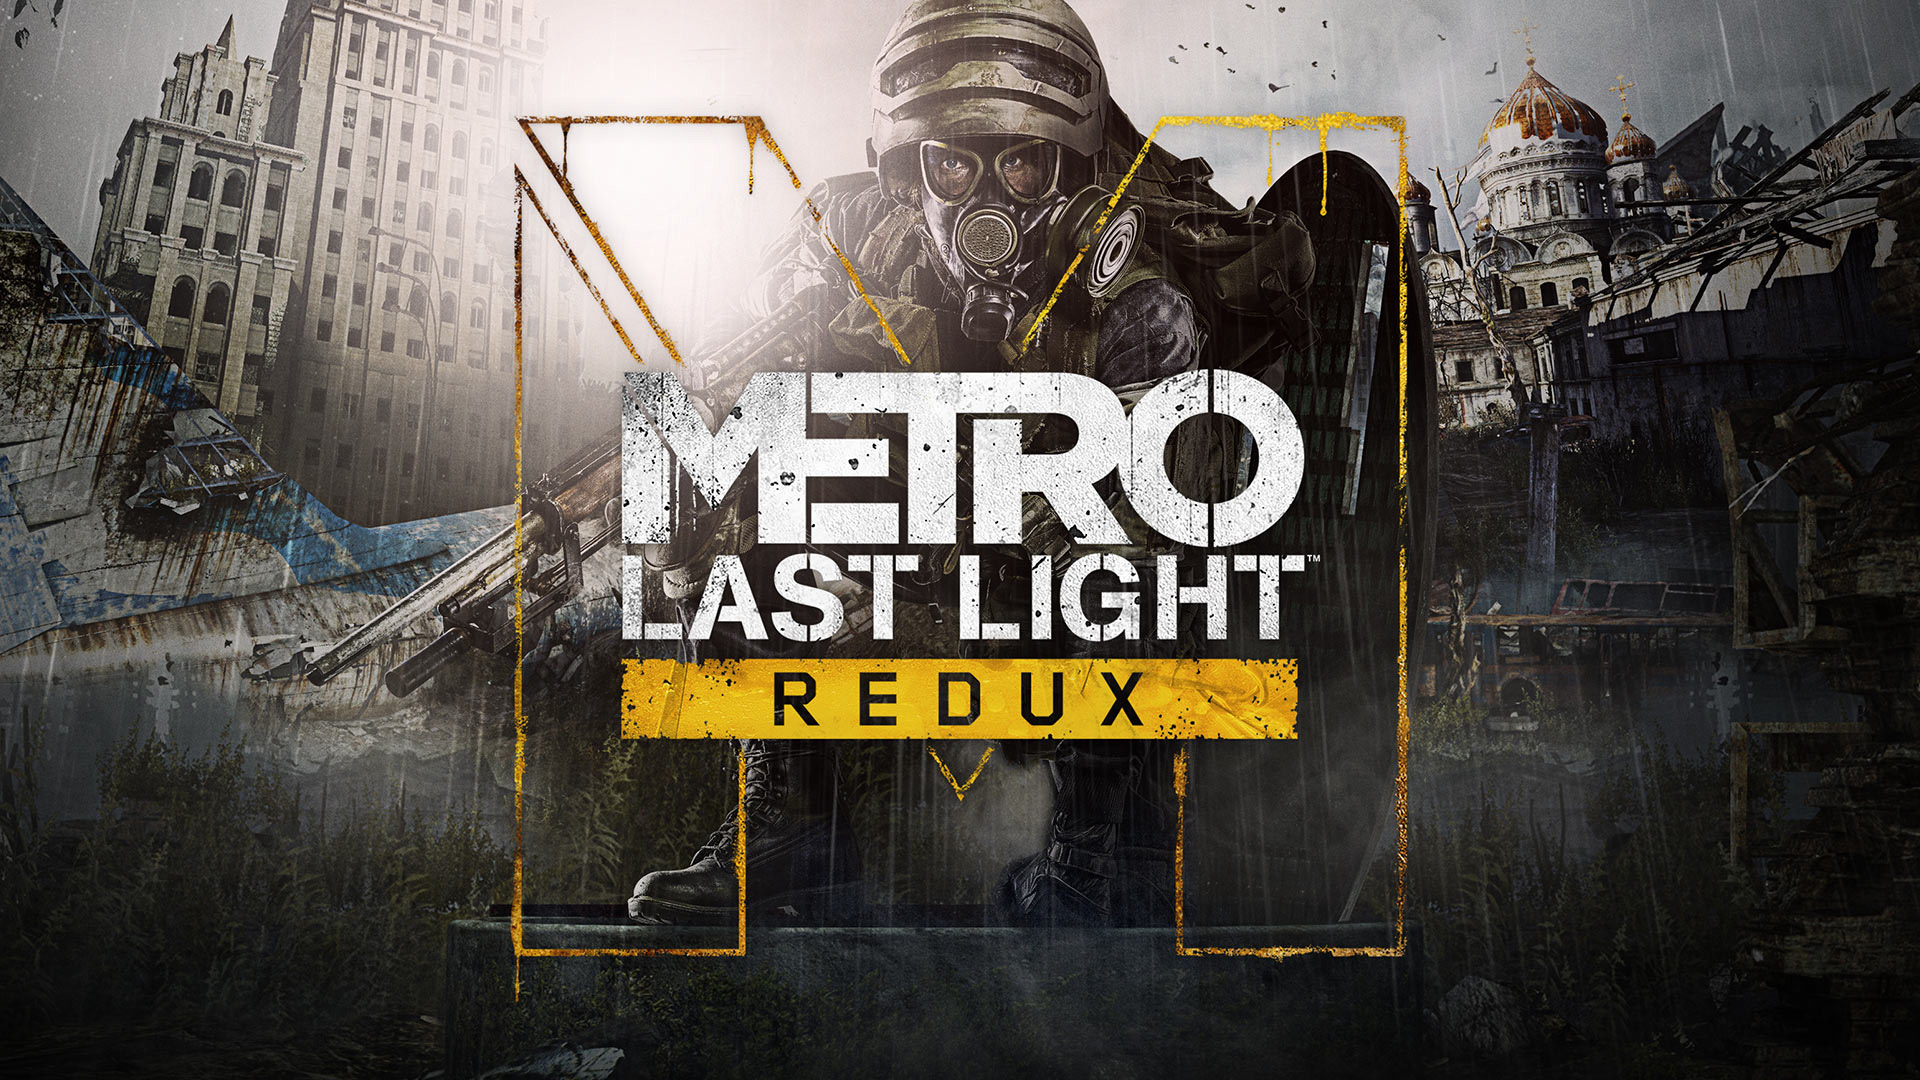 You can add Metro: Last Light Redux to your free PC game pile screenshot